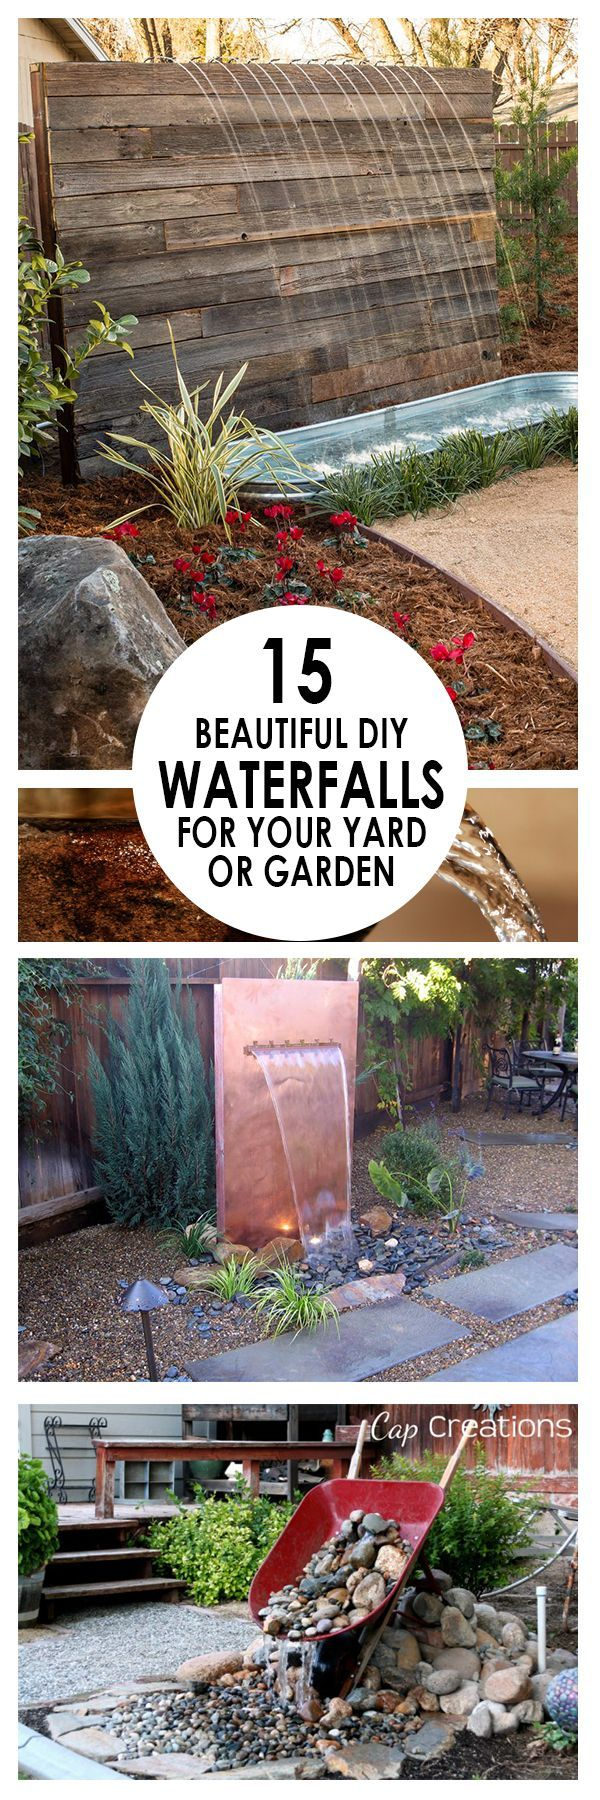 15 Beautiful DIY Waterfalls for Your Yard or Garden (1)